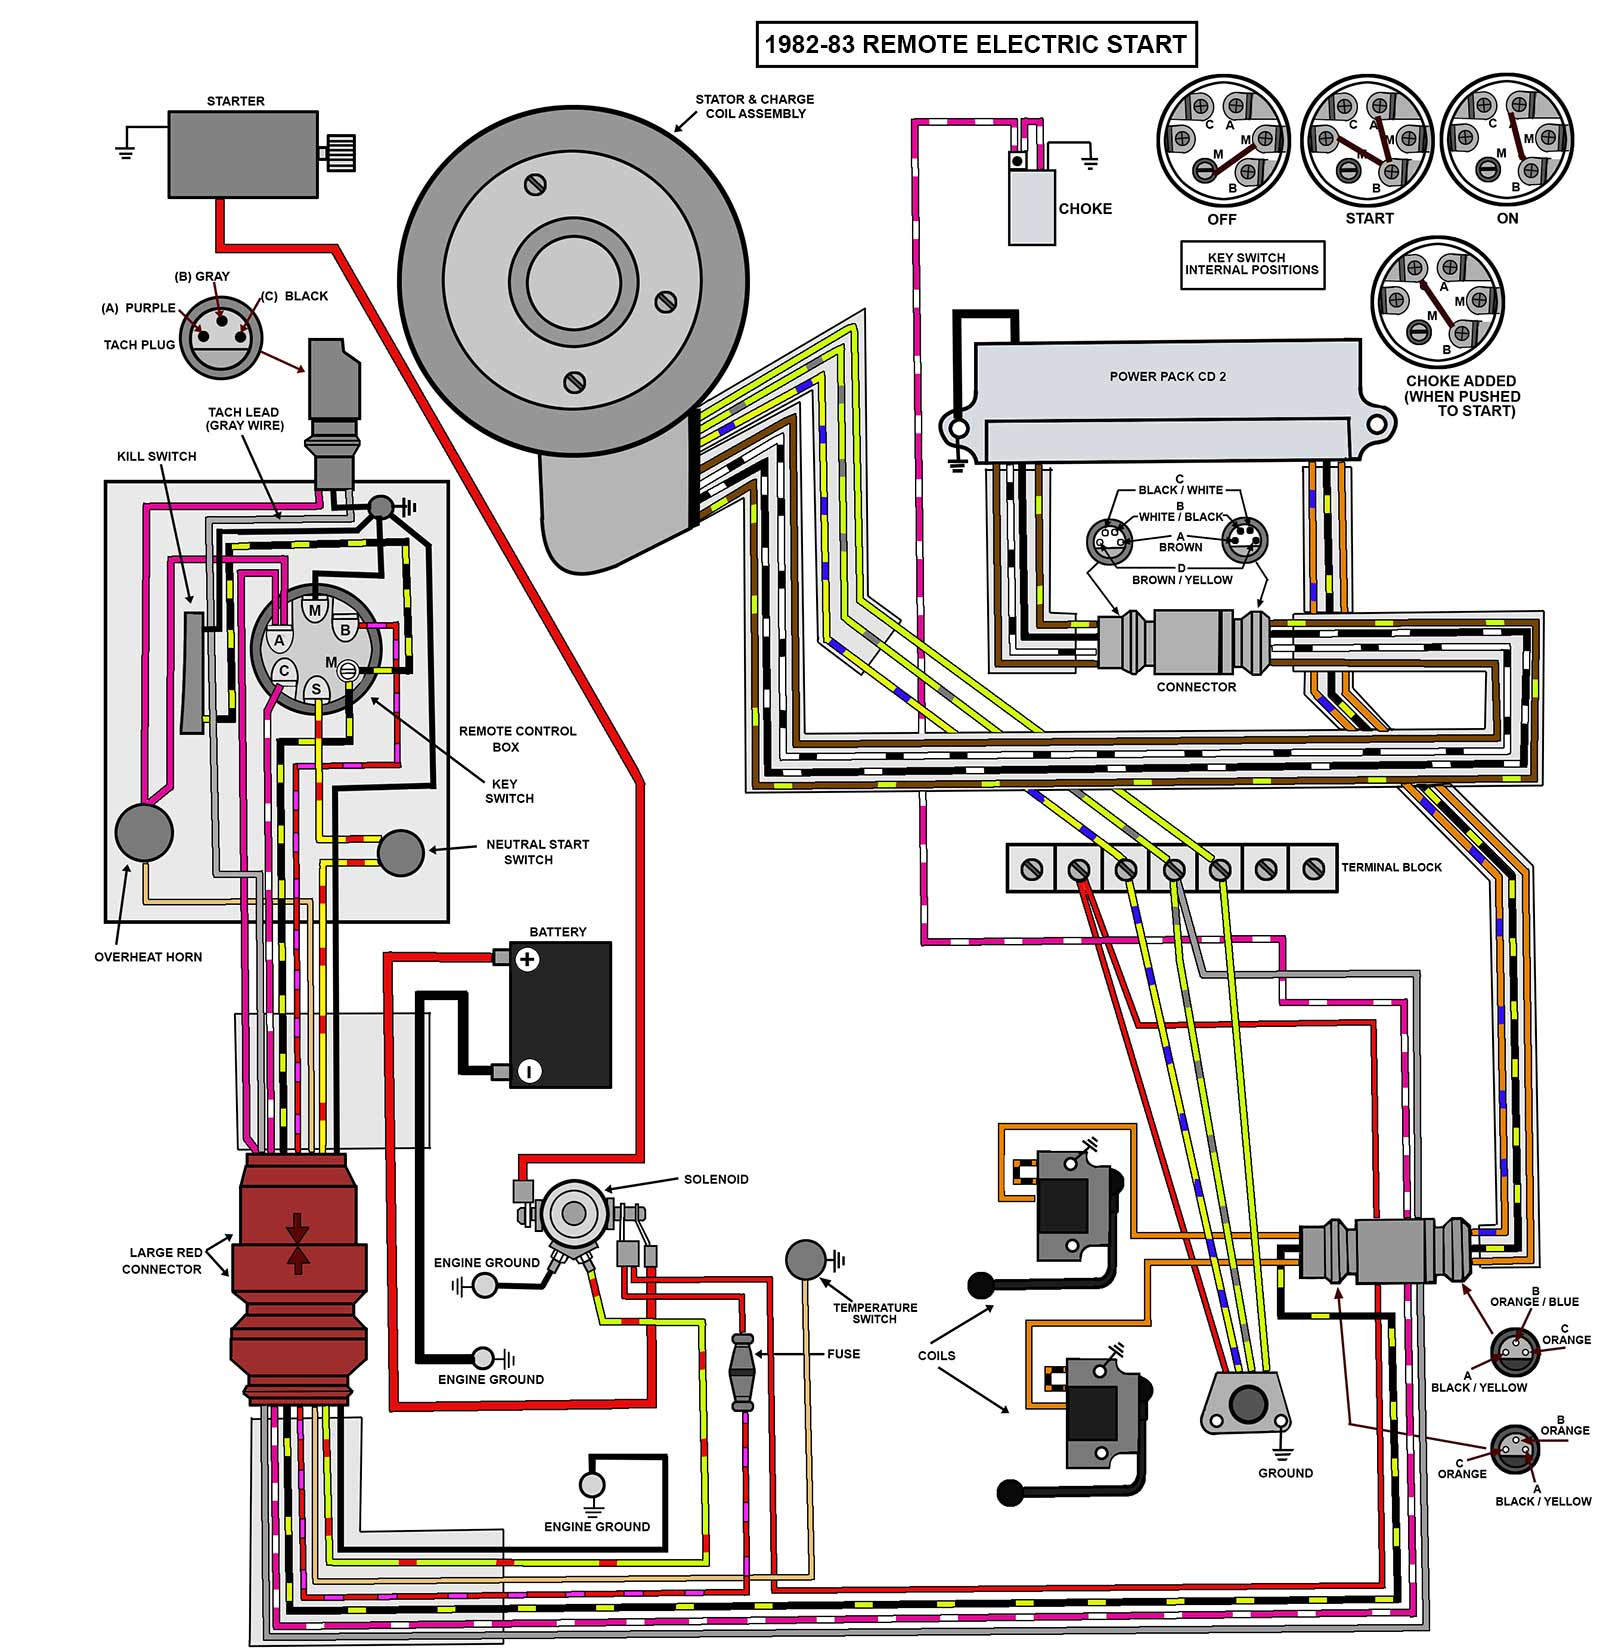 Omc Trim Motor Wiring Diagram on